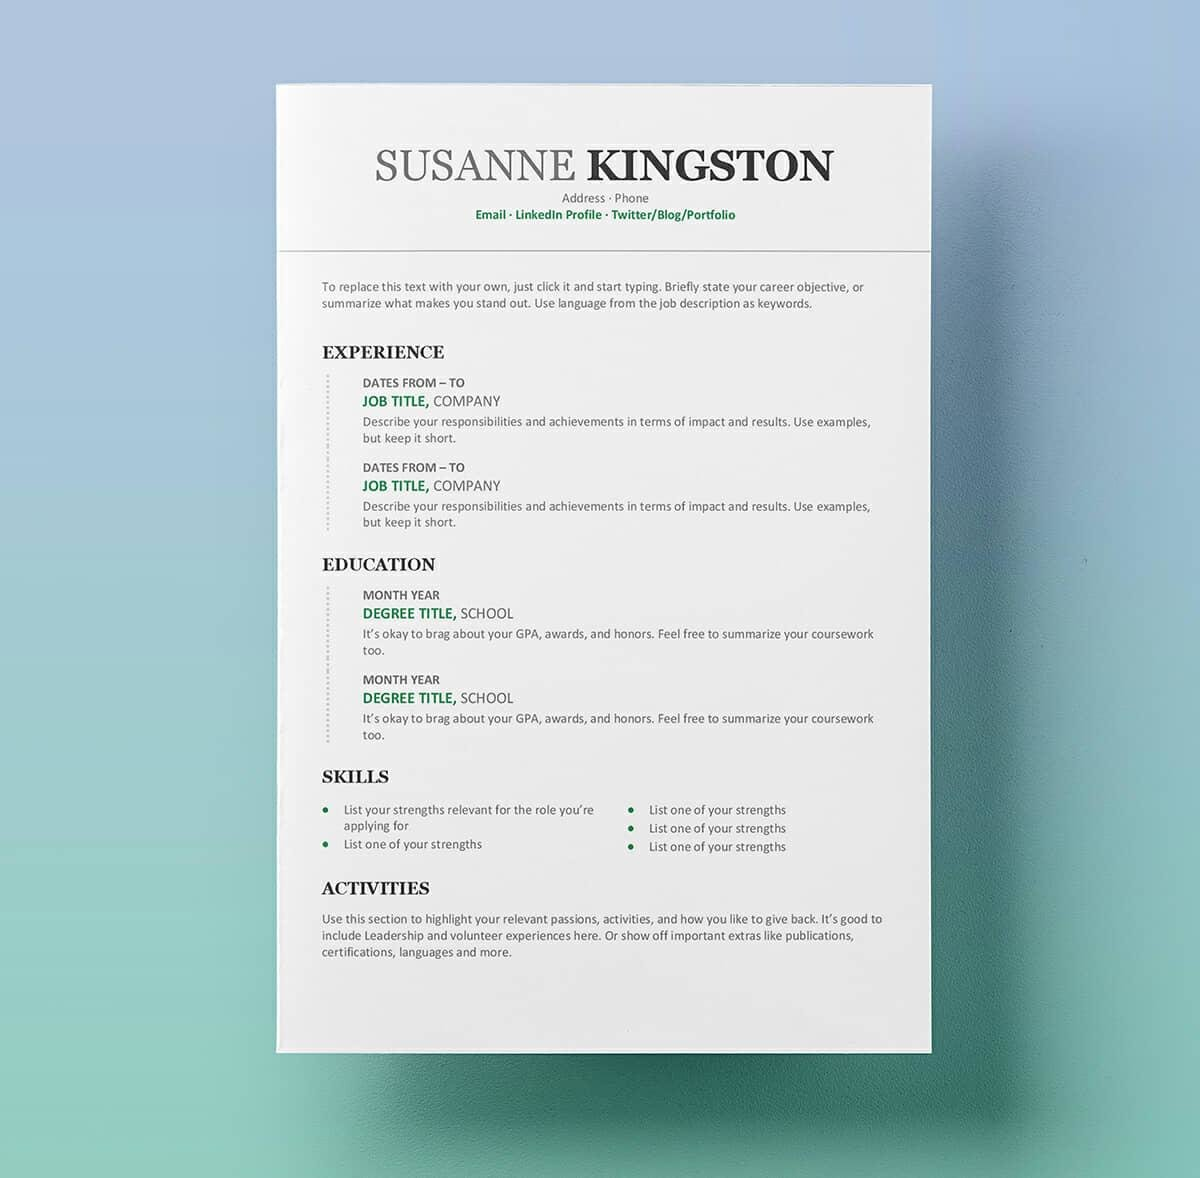 Resume templates for word free 15 examples for download for How to make a cv template on microsoft word